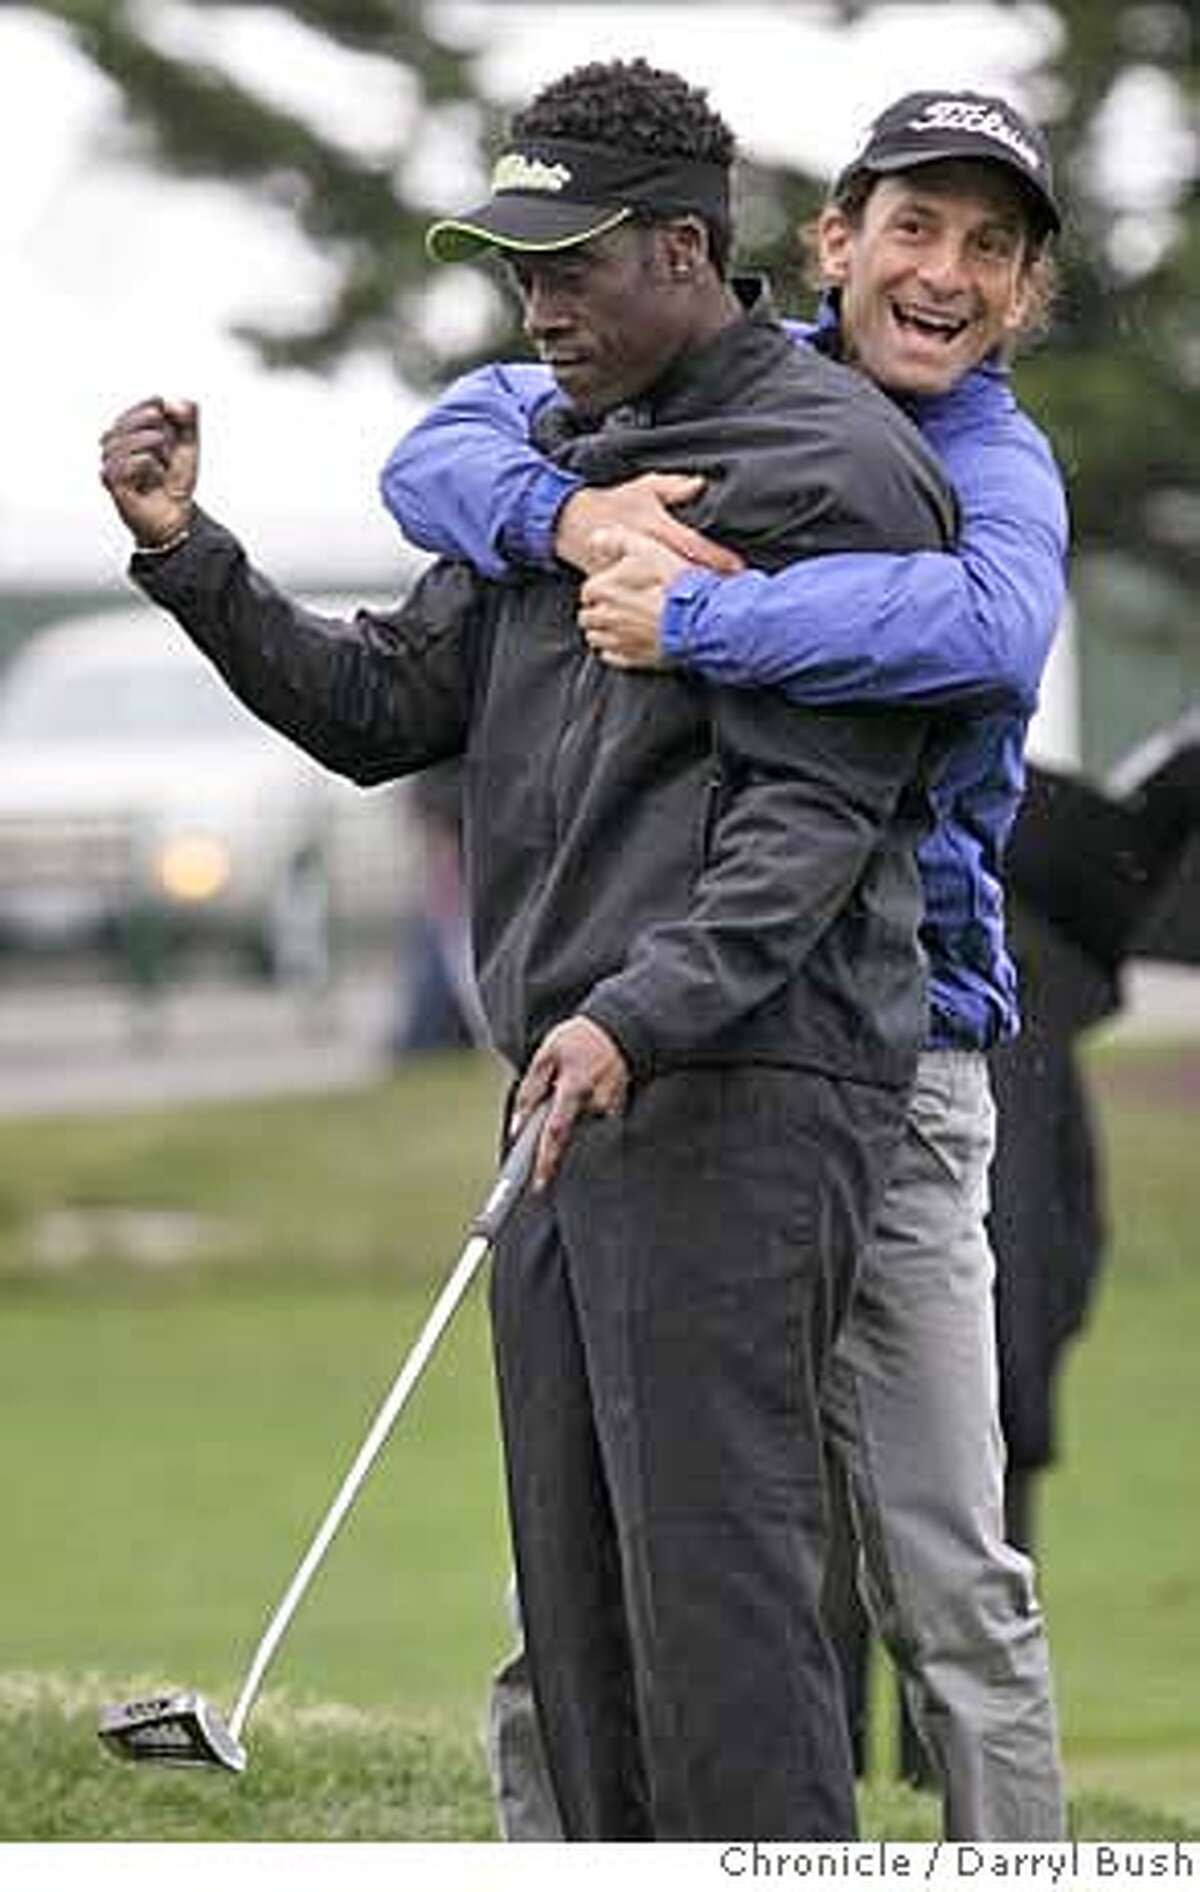 Musician Kenny G, right, hugs actor Don Cheadle who sank a put to win the 2nd hole, during the 2007 3M Celebrity Challenge held Wednesday during practice rounds, at the 2007 AT&T Pebble Beach National Pro-Am at Pebble Beach Golf Links in Pebble Beach, CA, on Wednesday, February, 7, 2007. photo taken: 2/7/07 Darryl Bush / The Chronicle ** (cq)